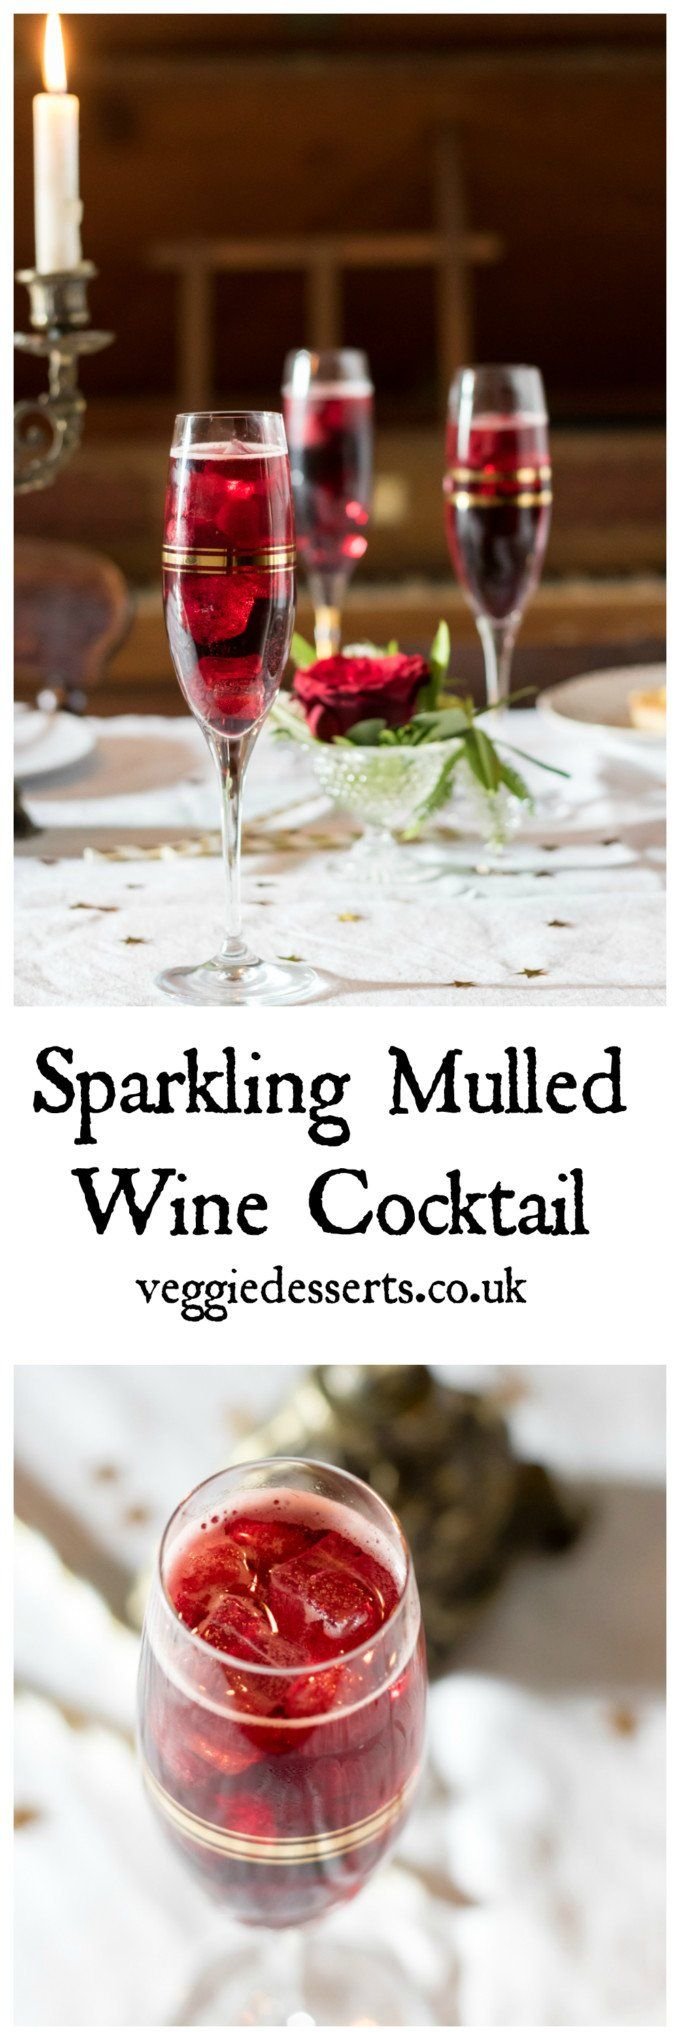 This sparkling mulled wine cocktail is a fun twist on the classic Christmas drink. It is served cold over ice! #christmas #christmascocktail #mulledwine